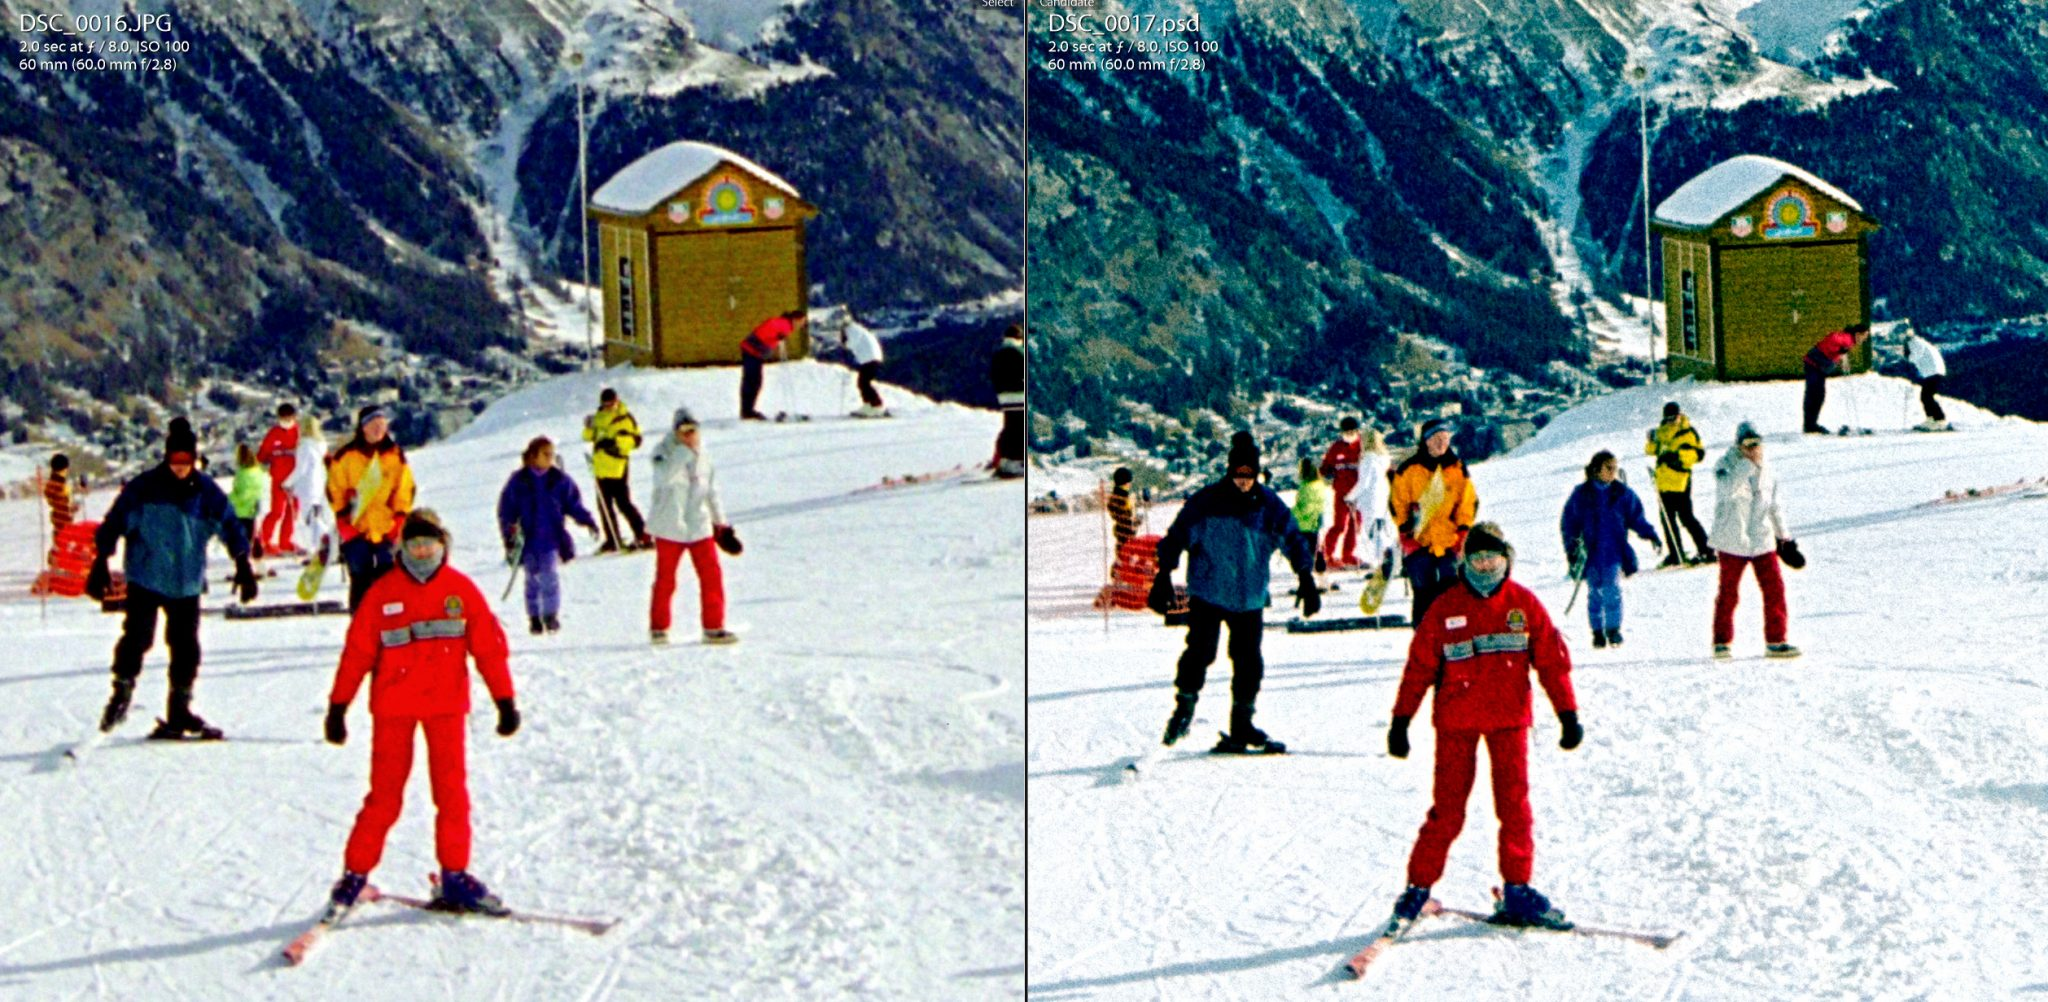 Comparison of Digitized and Photoshopped conversion of film negative of snow scene